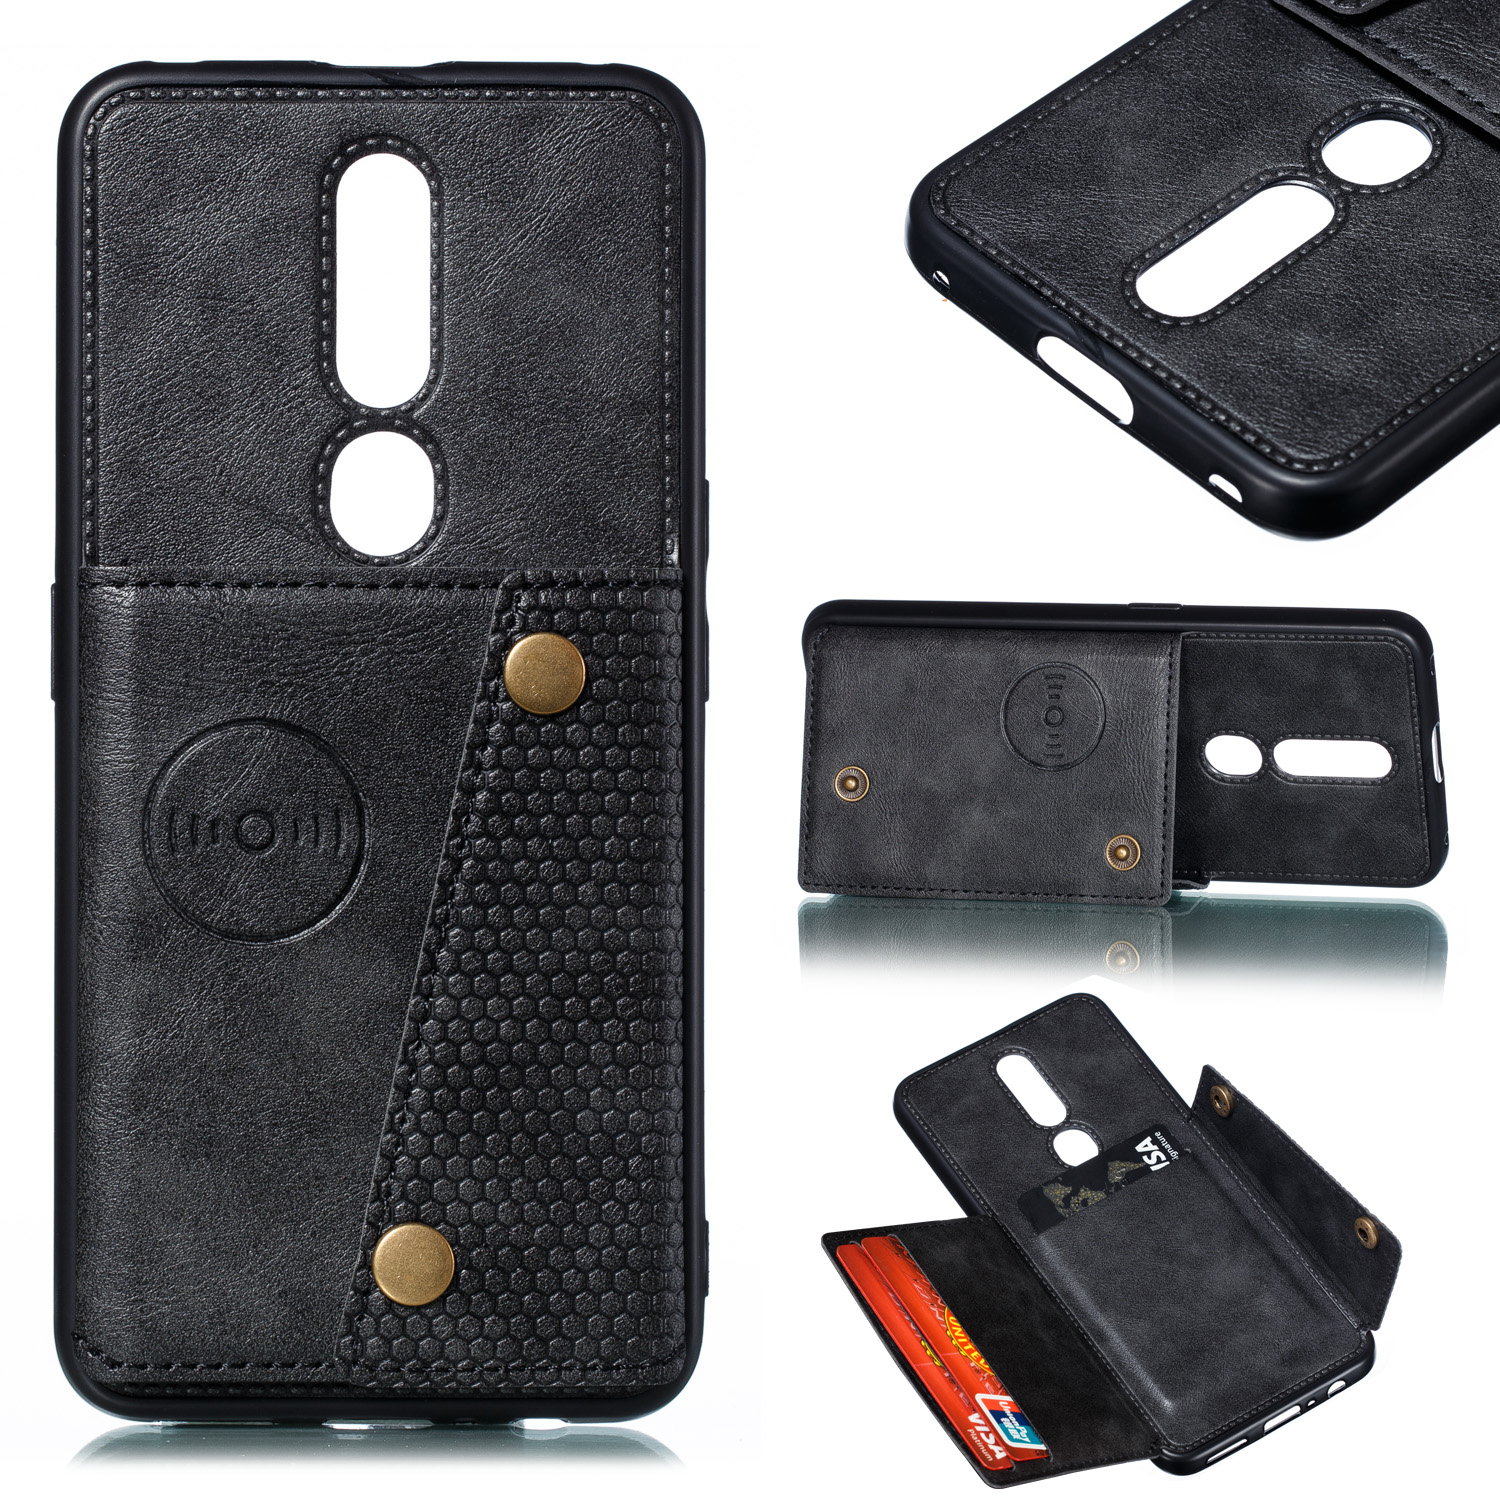 For OPPO F11 pro PU Leather Flip Stand Shockproof Cell Phone Cover Double Buckle Anti-dust Case With Card Slots Pocket black